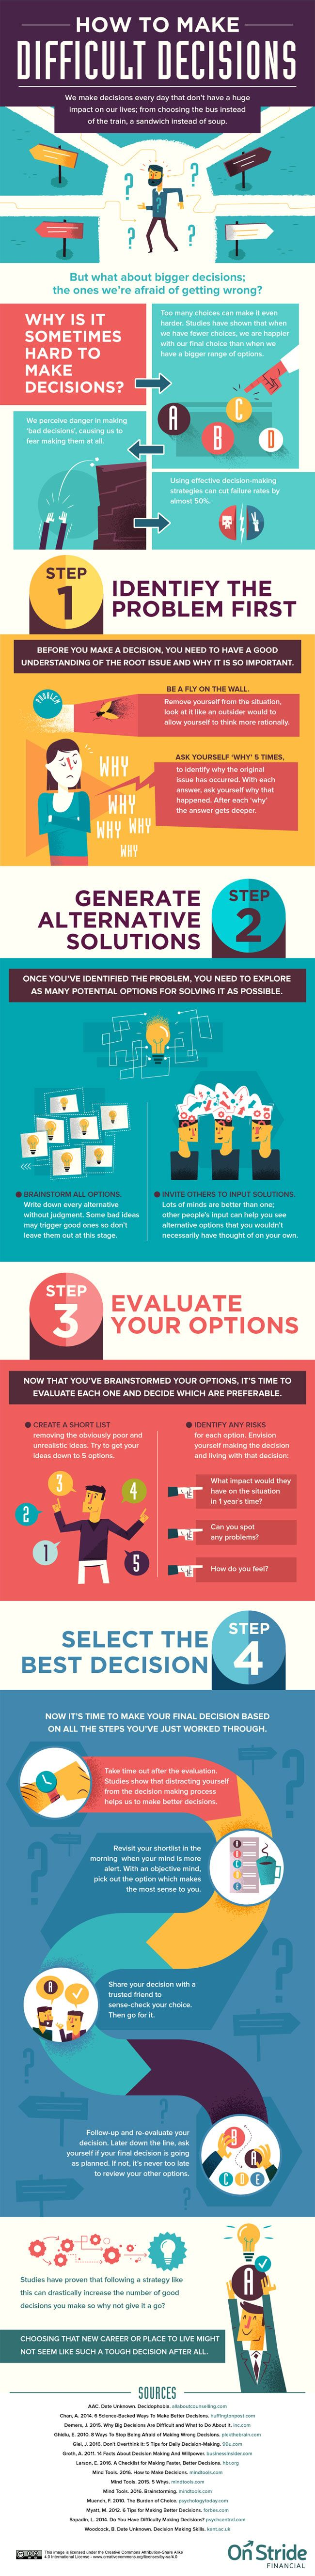 4 Steps to Making Hard Decisions Easier